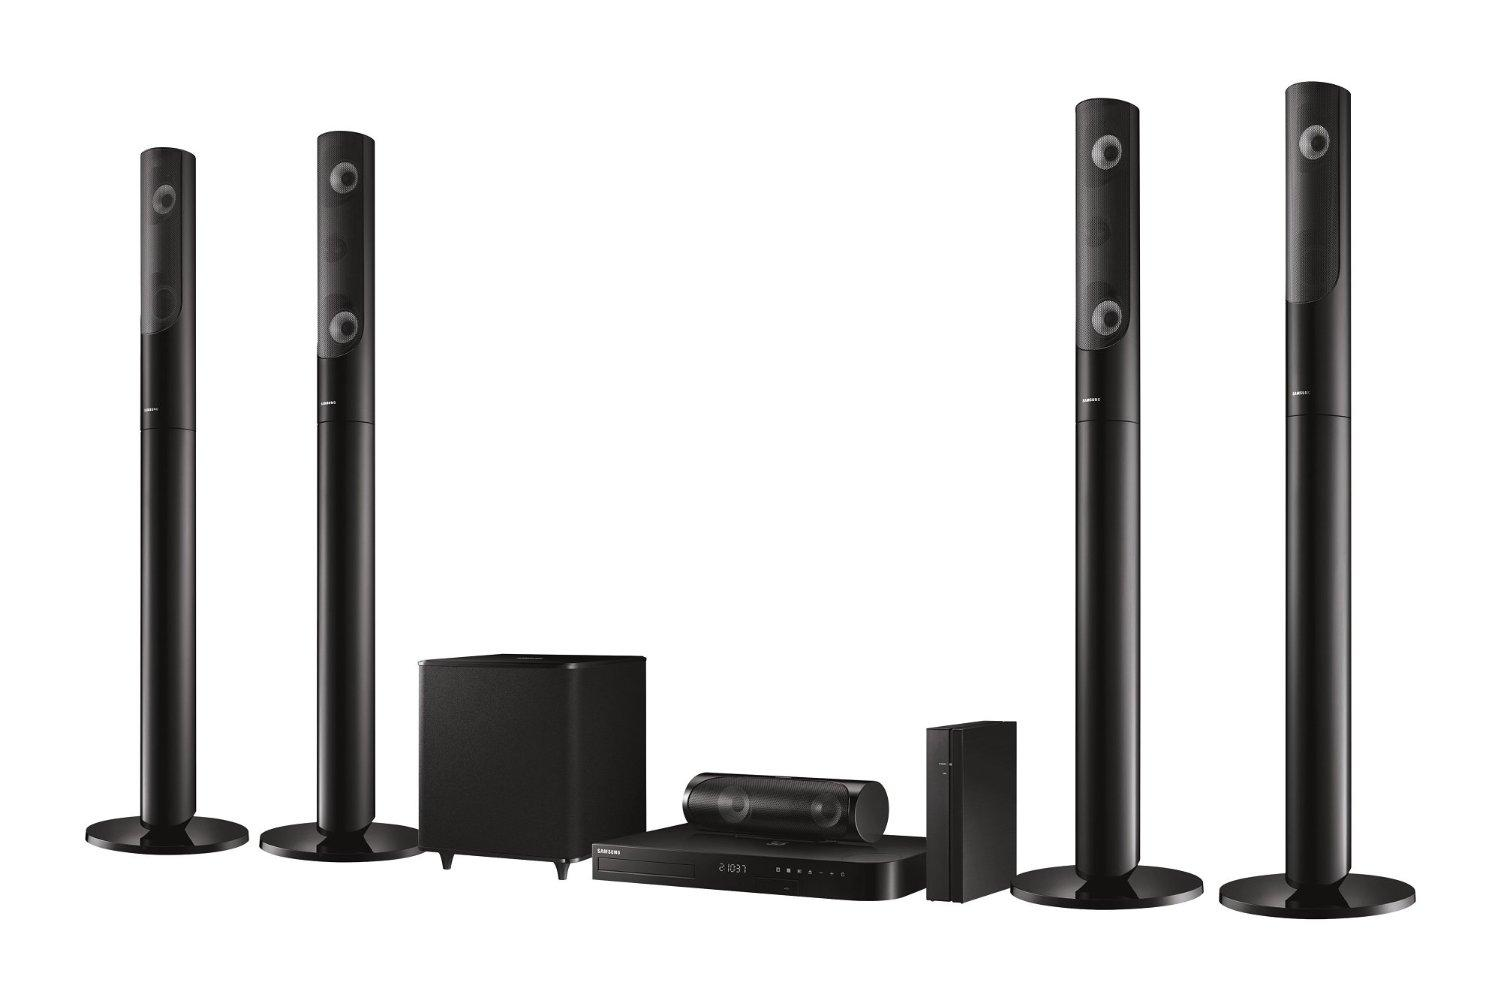 samsung ht j5550w 5 1 3d blu ray home theater system 1000w. Black Bedroom Furniture Sets. Home Design Ideas